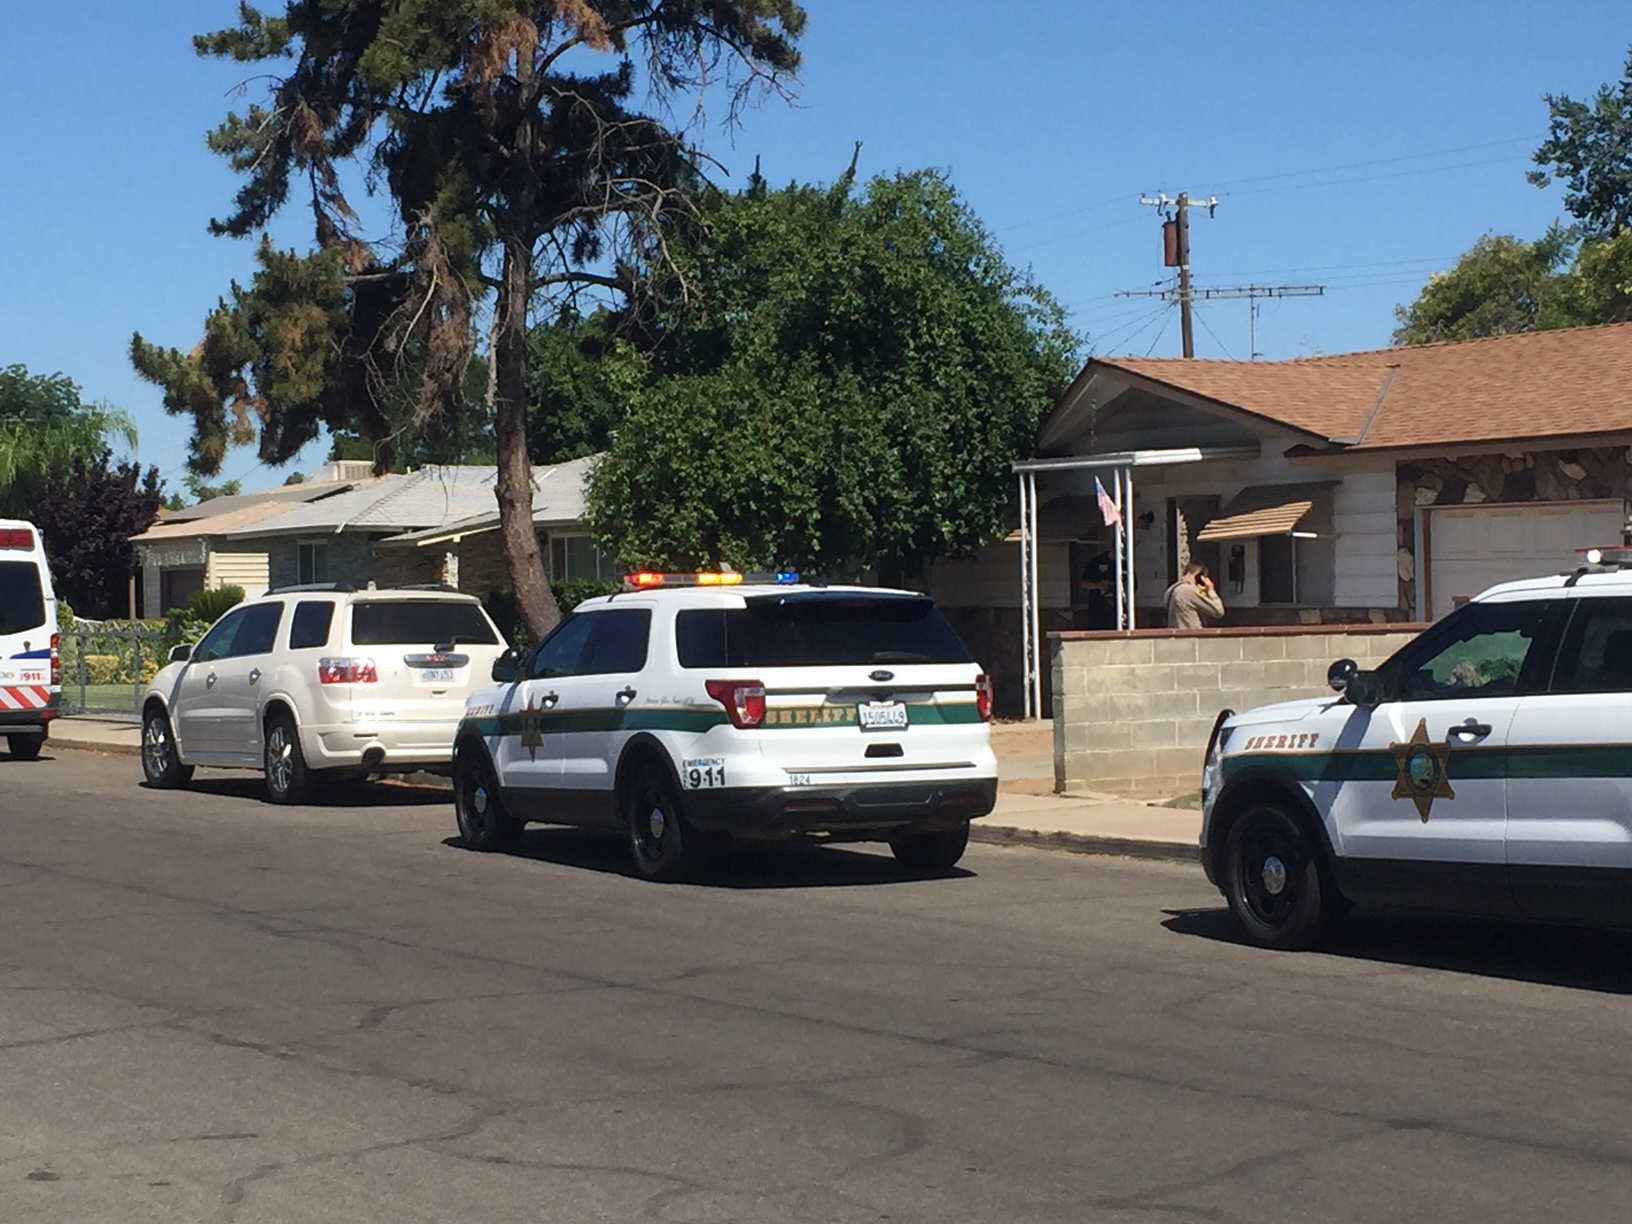 8-month-old boy's death ruled a homicide by Fresno County Coroner's Office